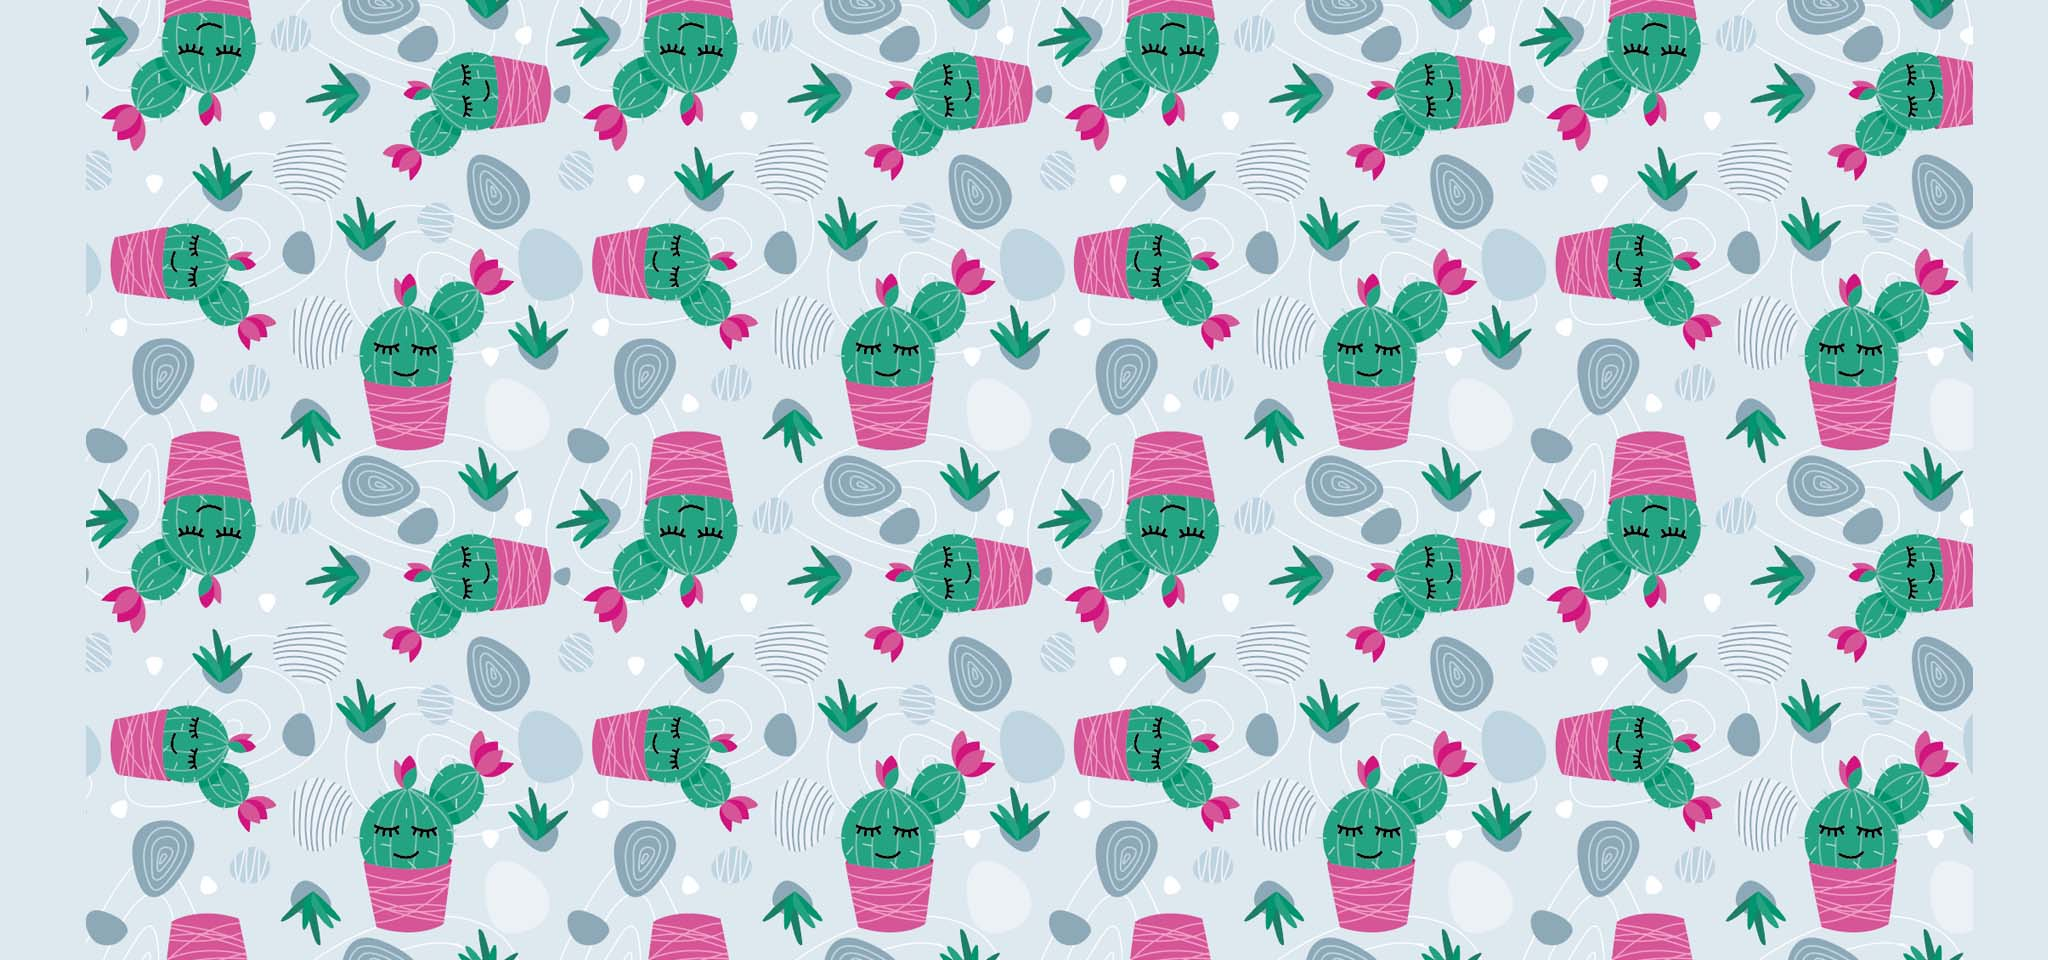 Pattern motif cactus galets illustration